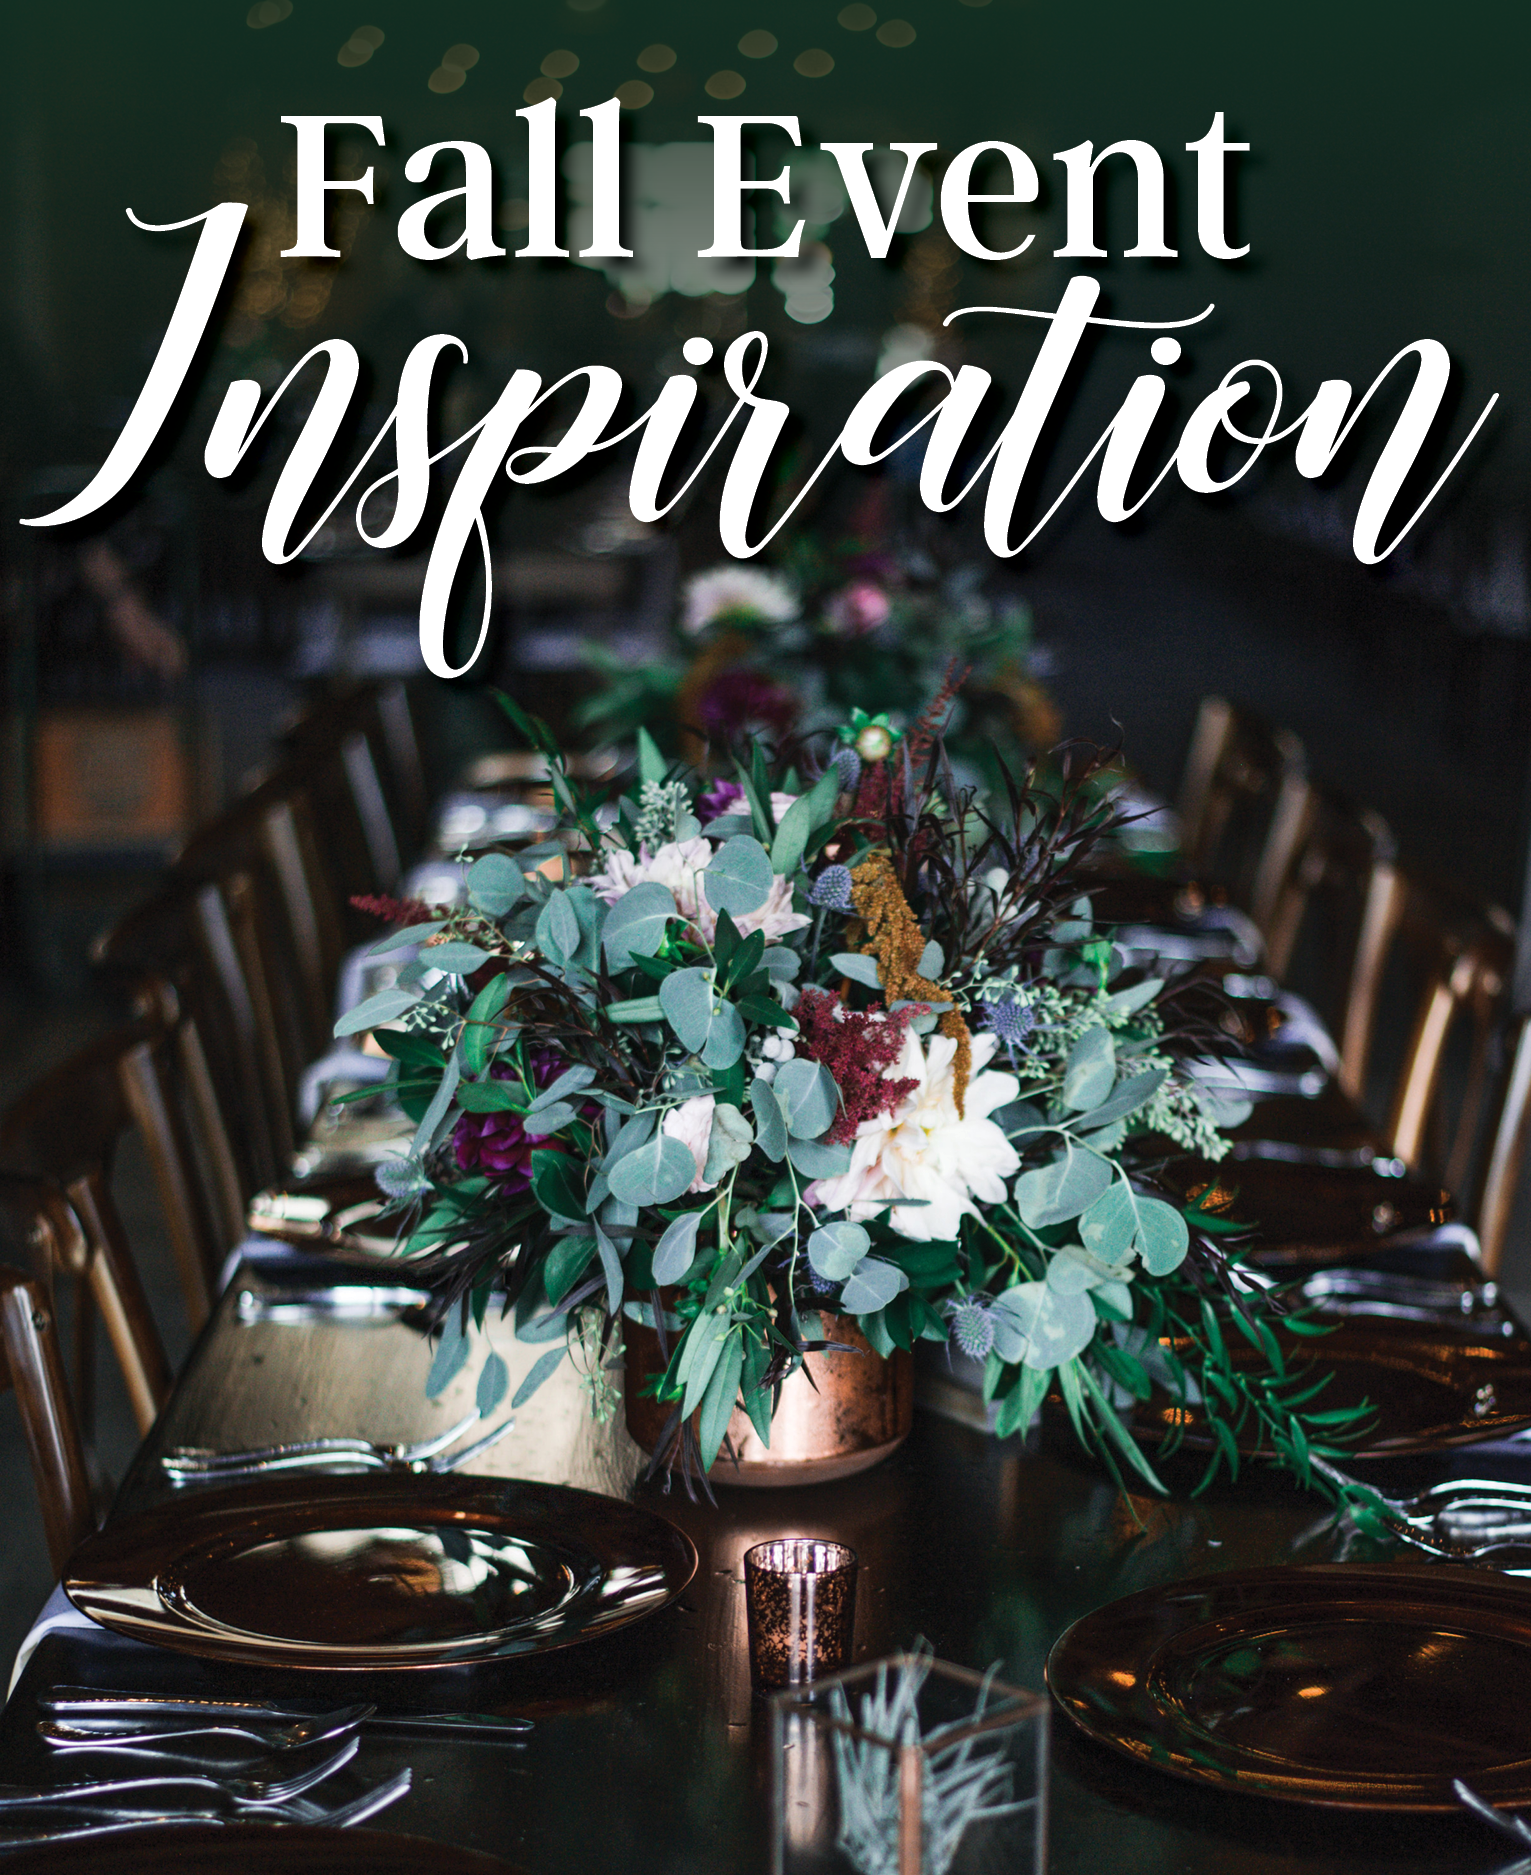 Set The Mood For Everything: Check Out These Fall Event Inspirations That Are Sure To